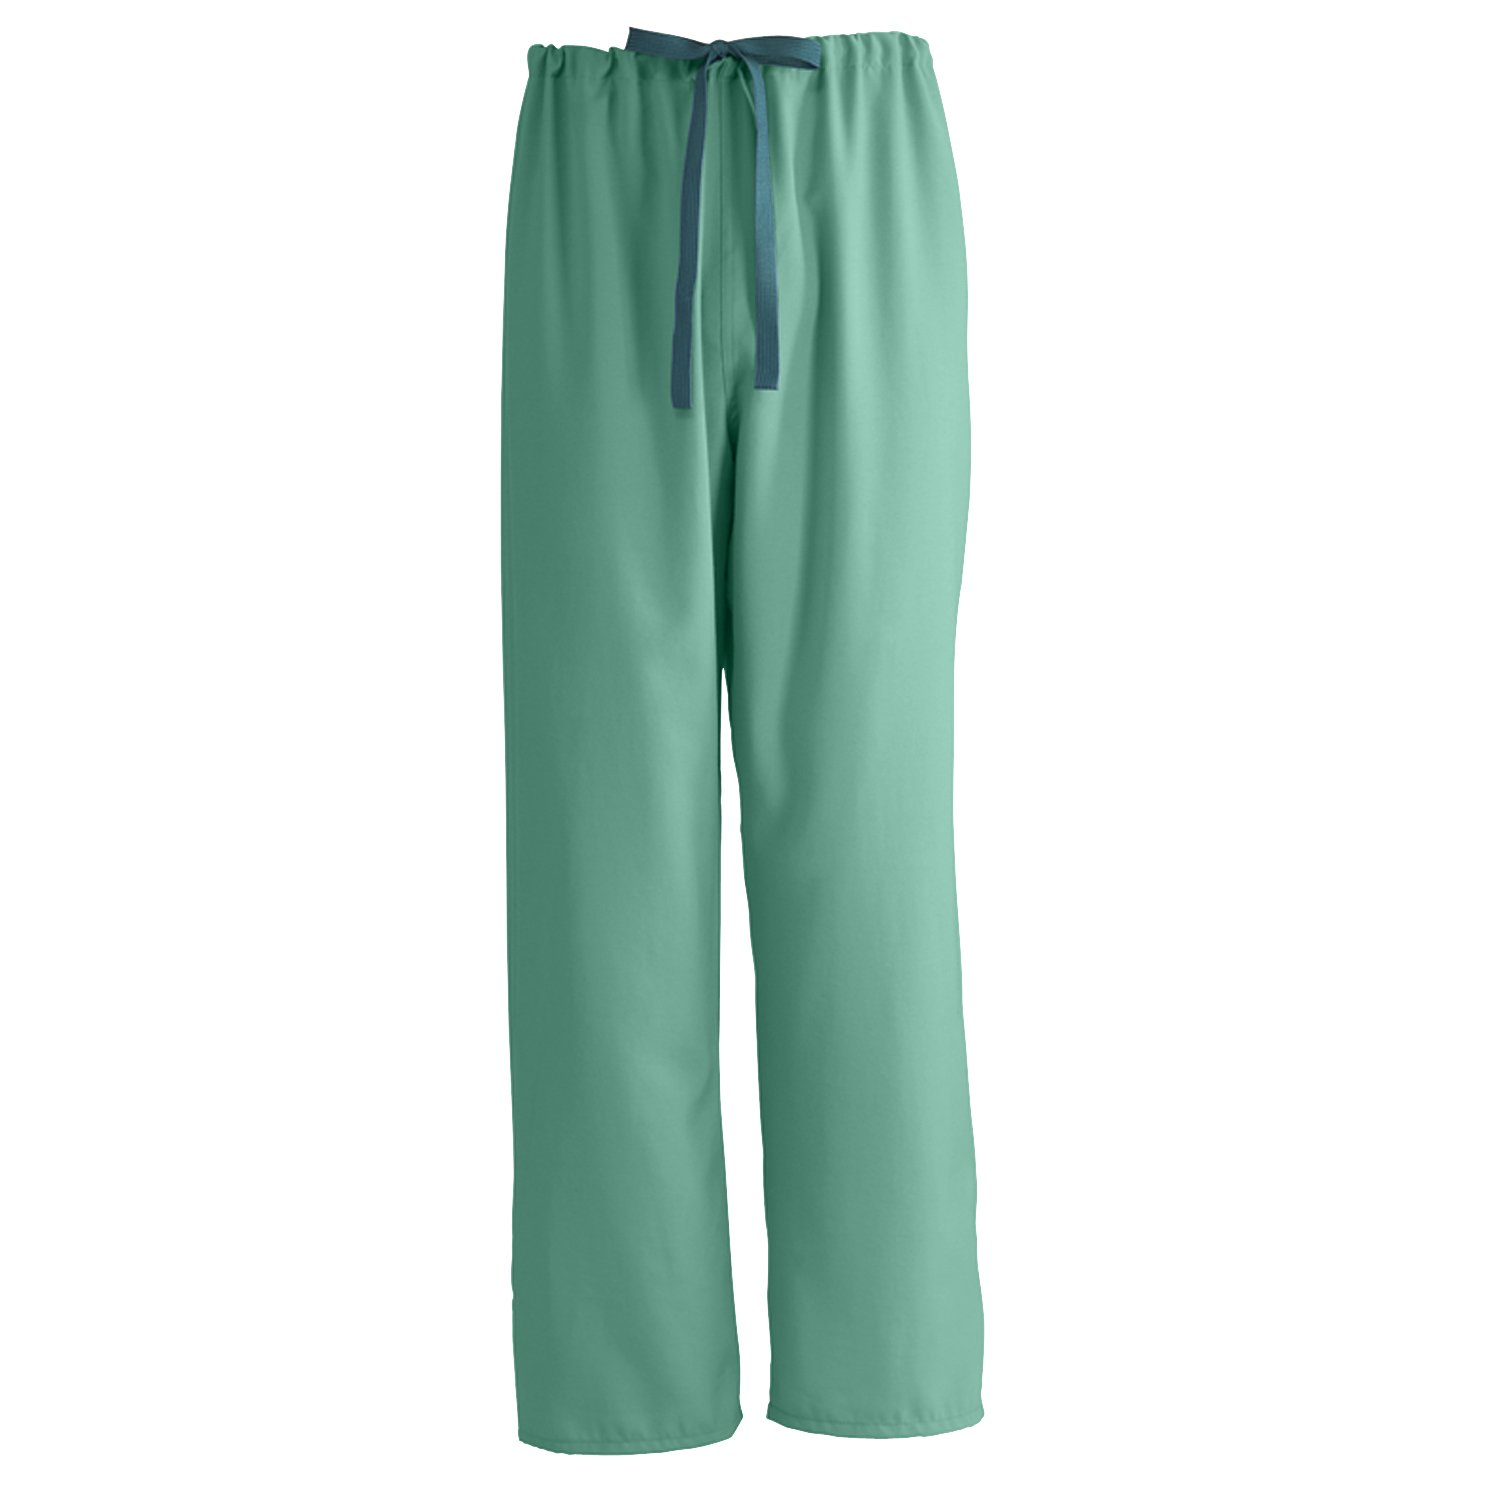 Medline PerforMAX Reversible Drawstring Scrub Pant, ANG-CC, Medium, Jade Green